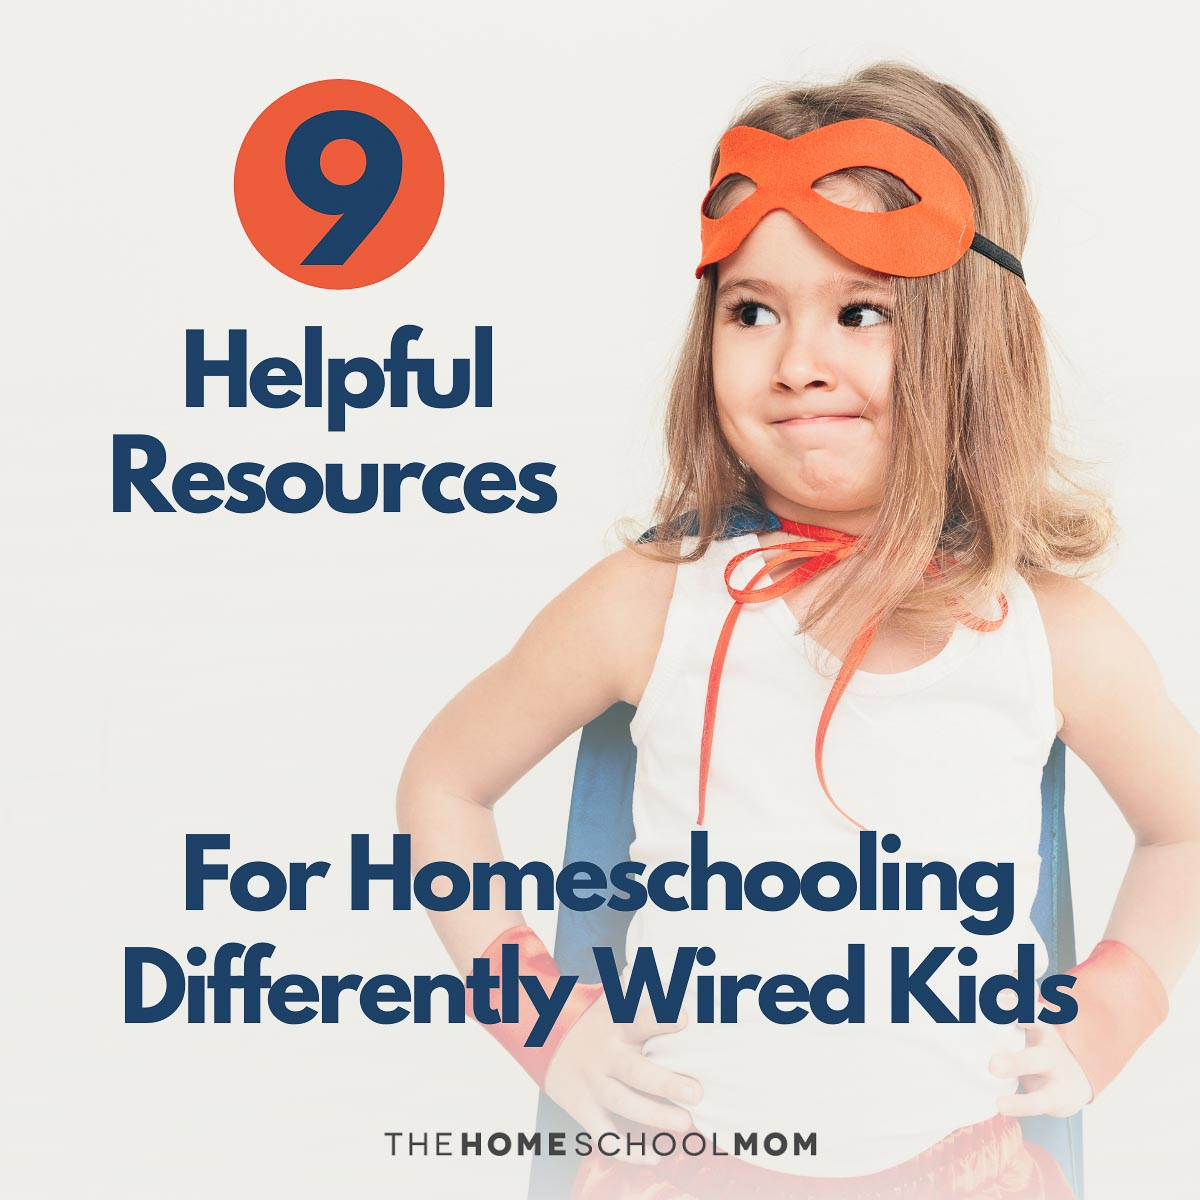 girl dressed as superhero with text 9 helpful resources for homeschooling differently wired kids